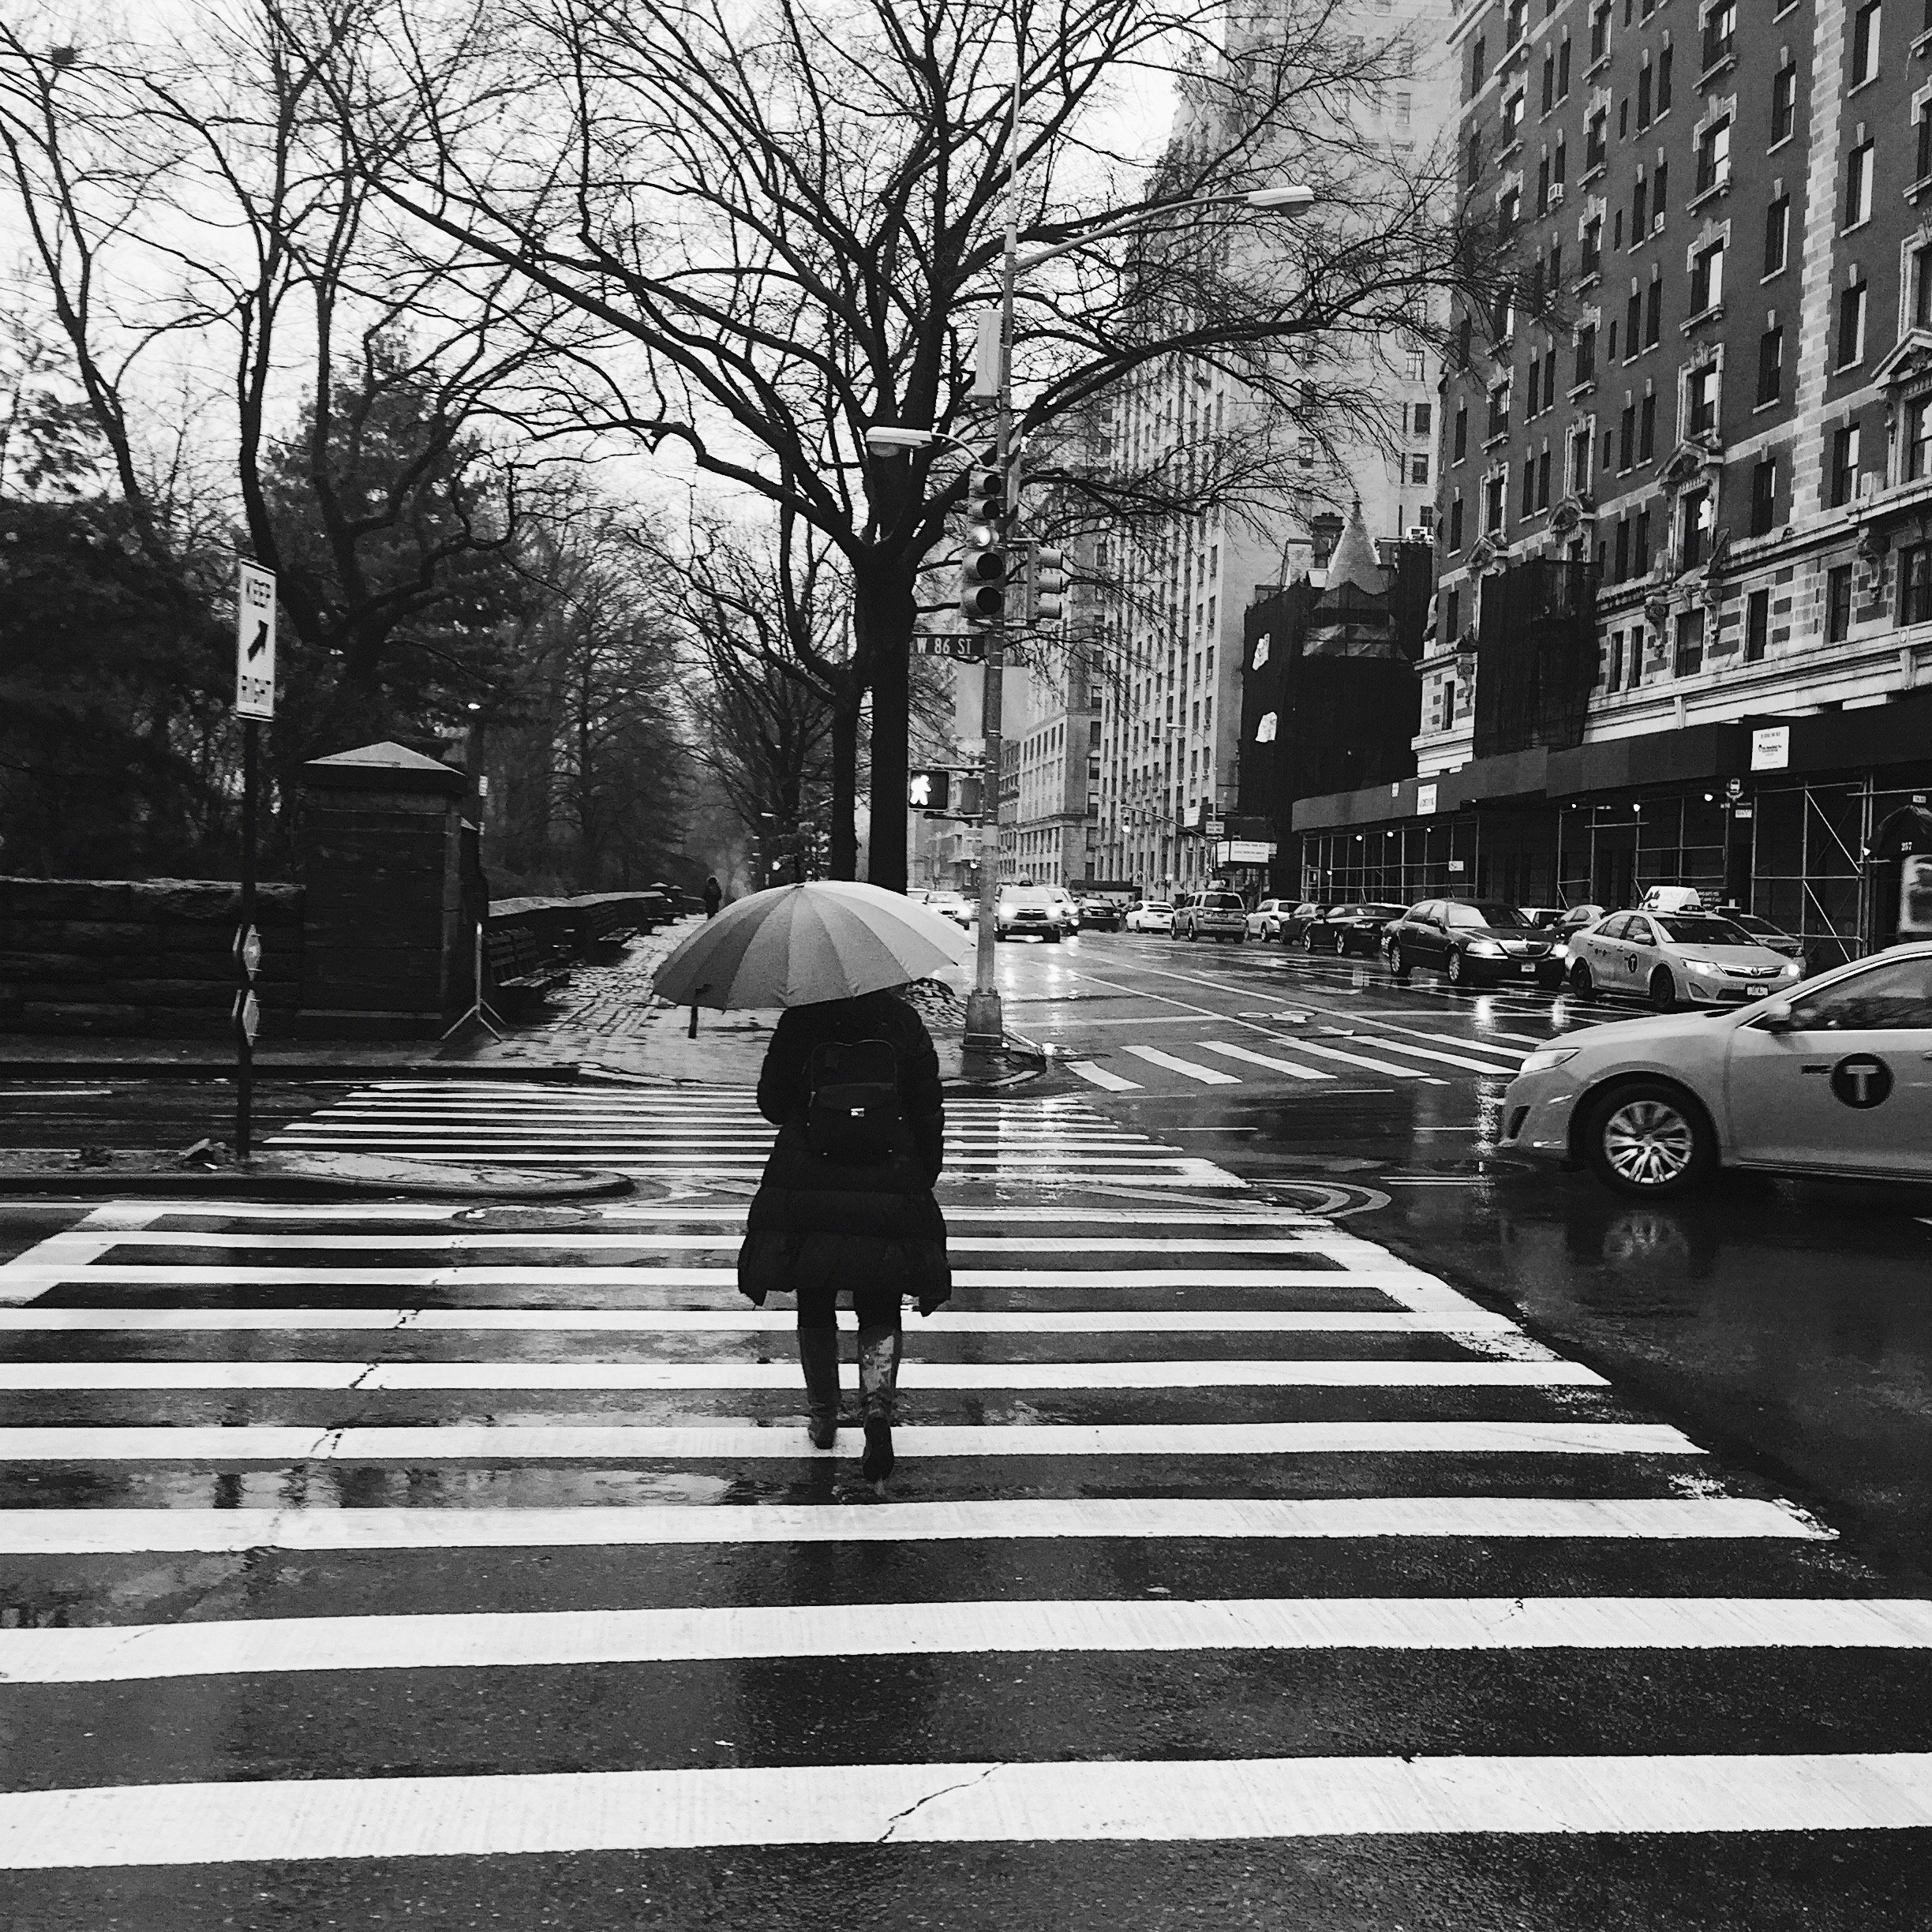 Rainy morning. New York, New York.